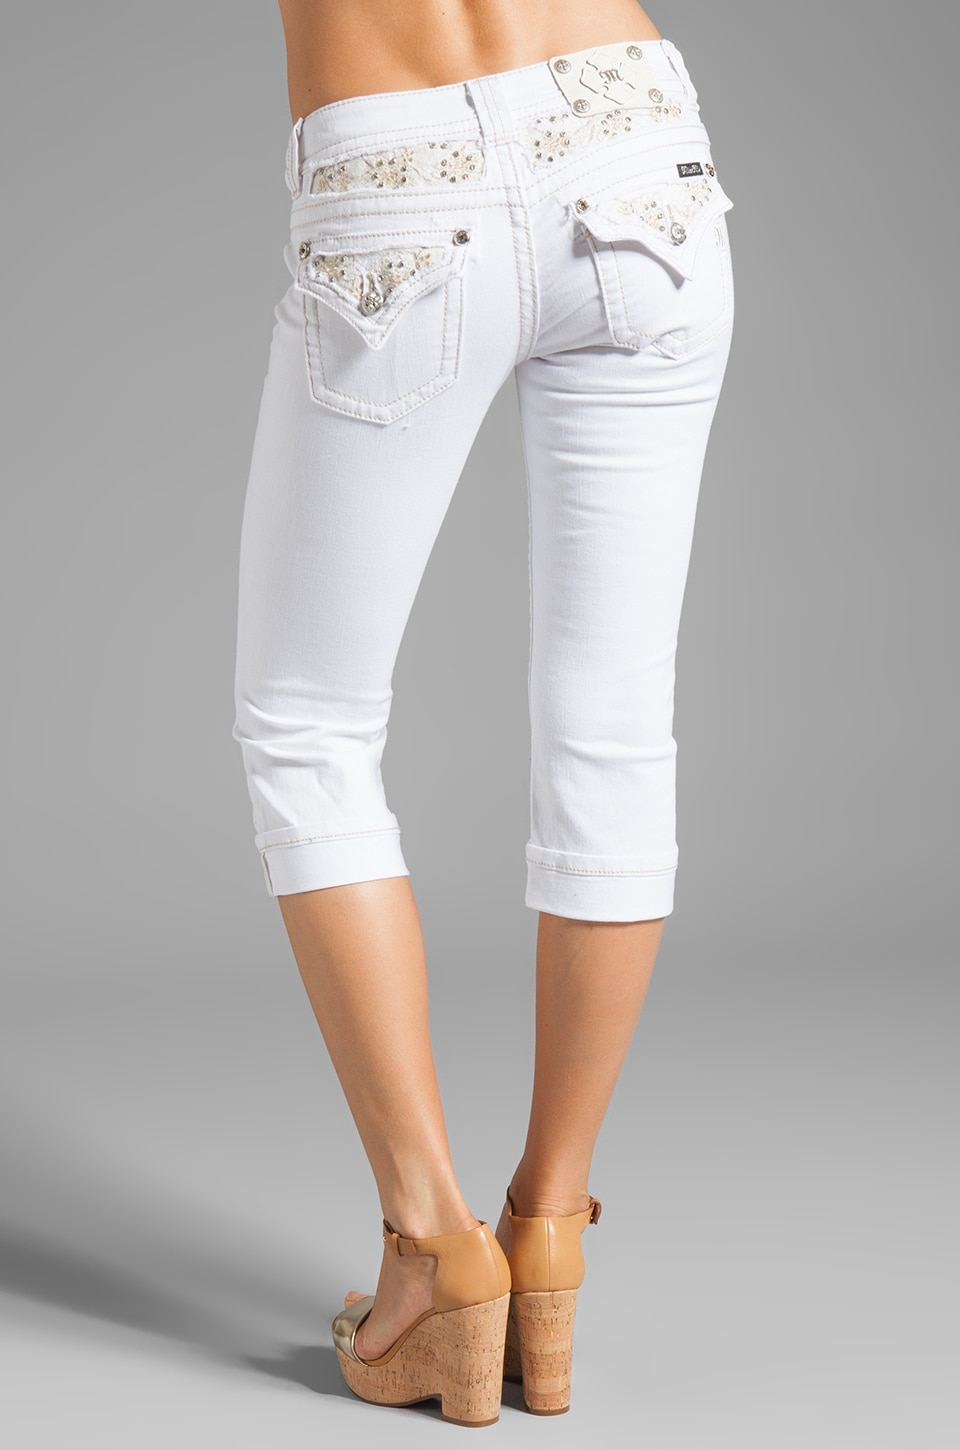 white denim capri pants - Pi Pants